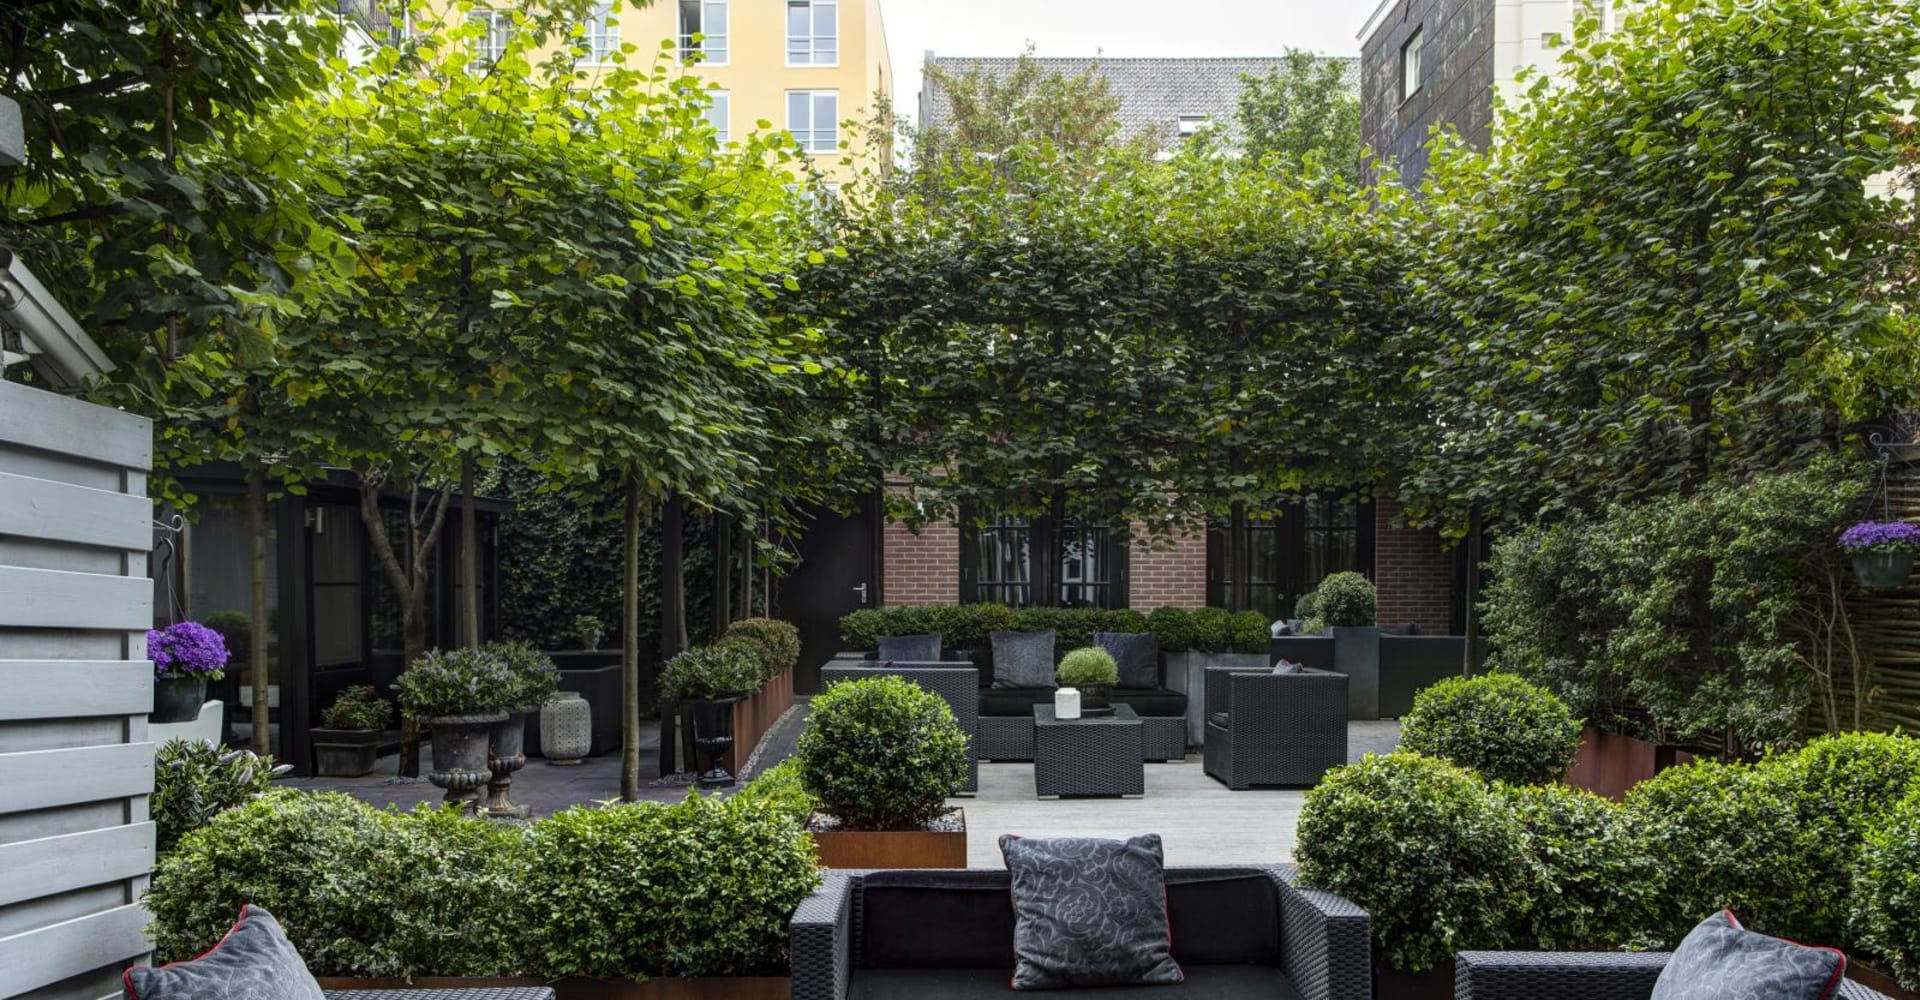 Environment - The Toren Amsterdam - By the Pavilions